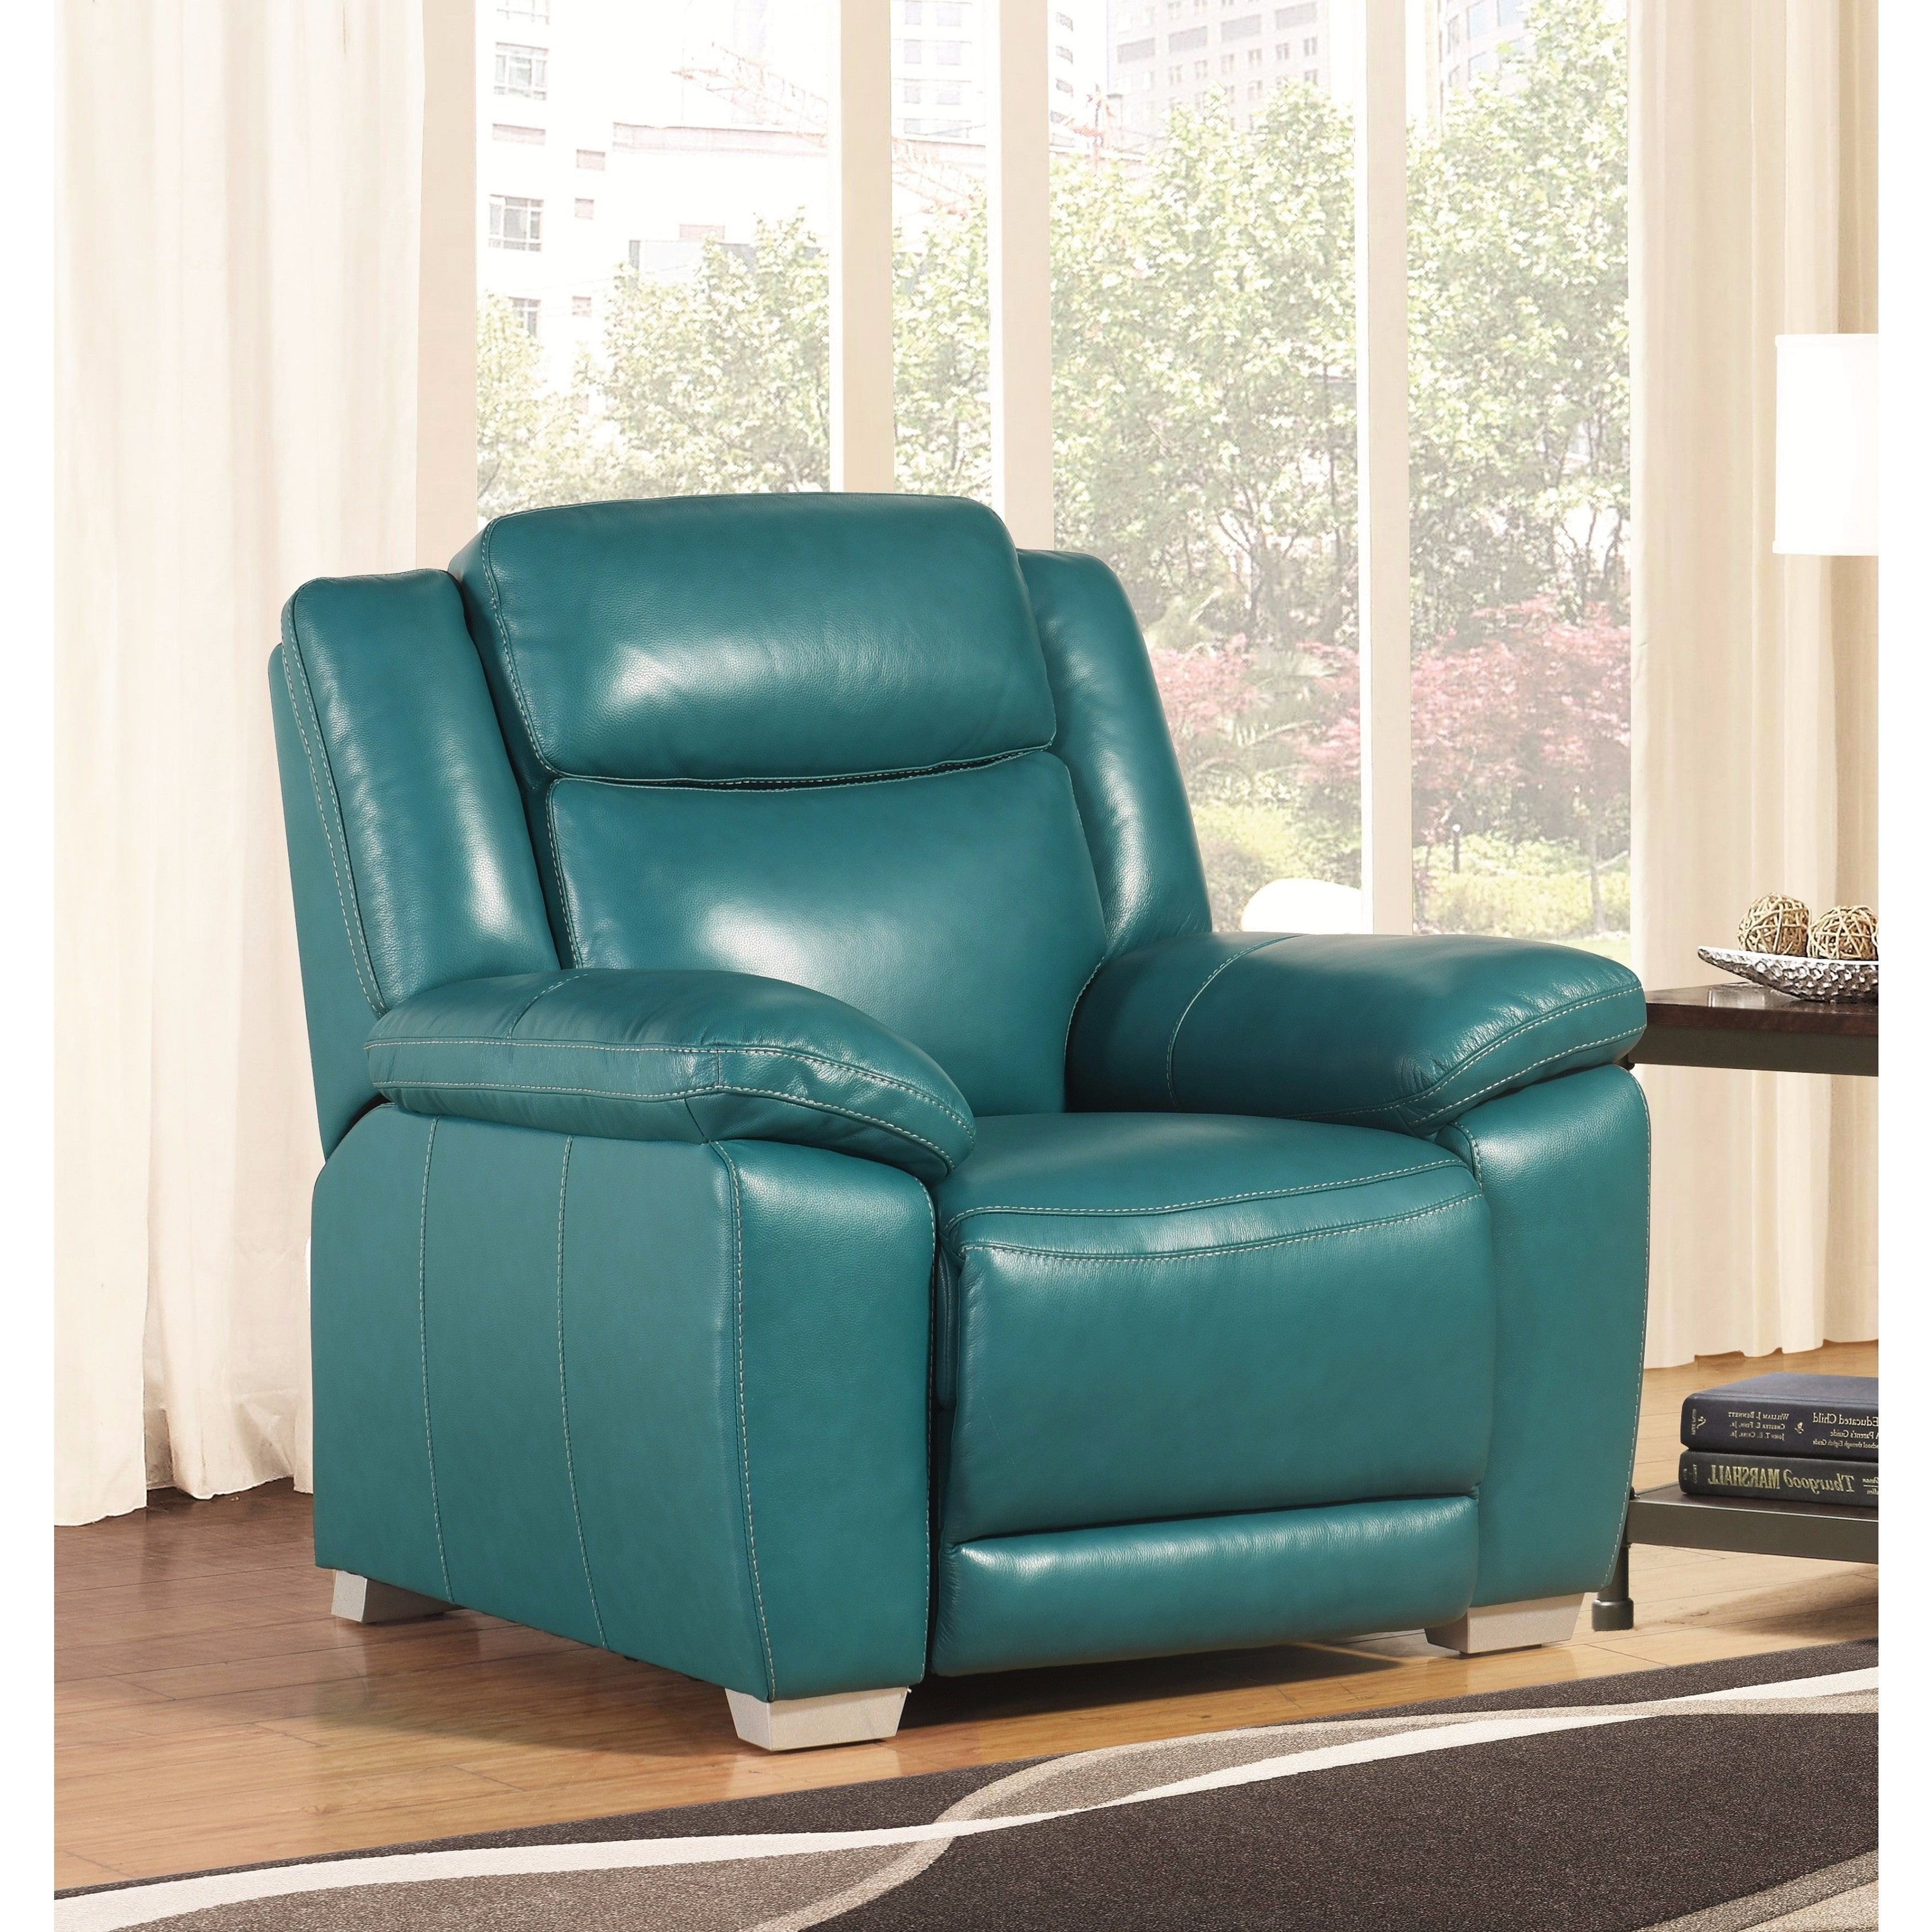 Abbyson leyla turquoise top grain leather recliner living room chair blue